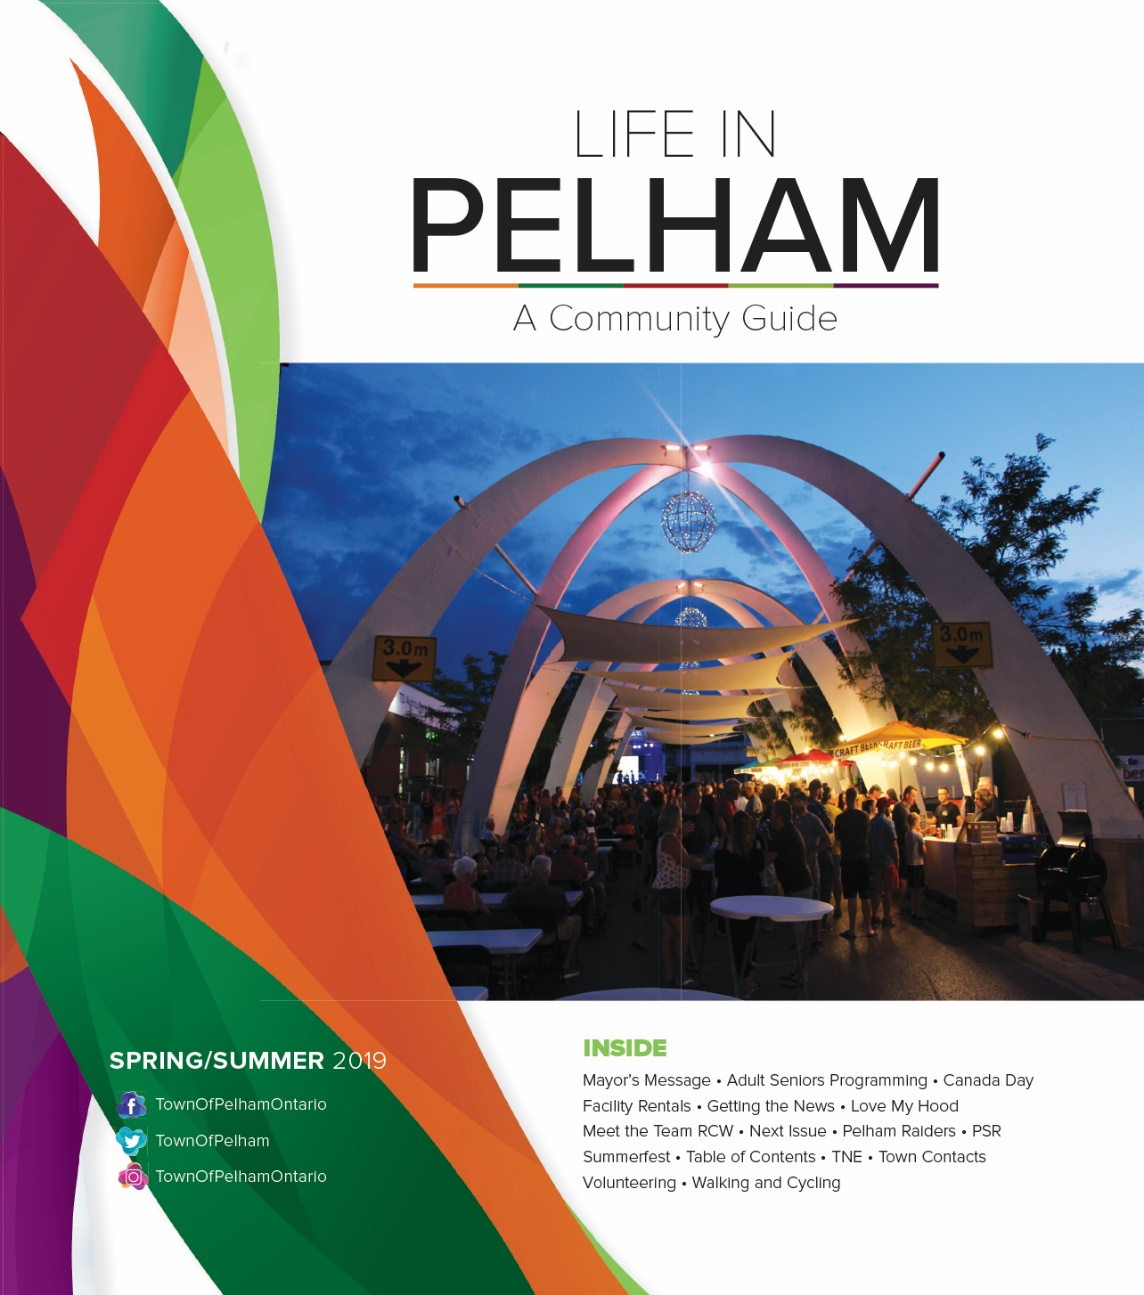 guide cover with pelham arches lit up at dusk